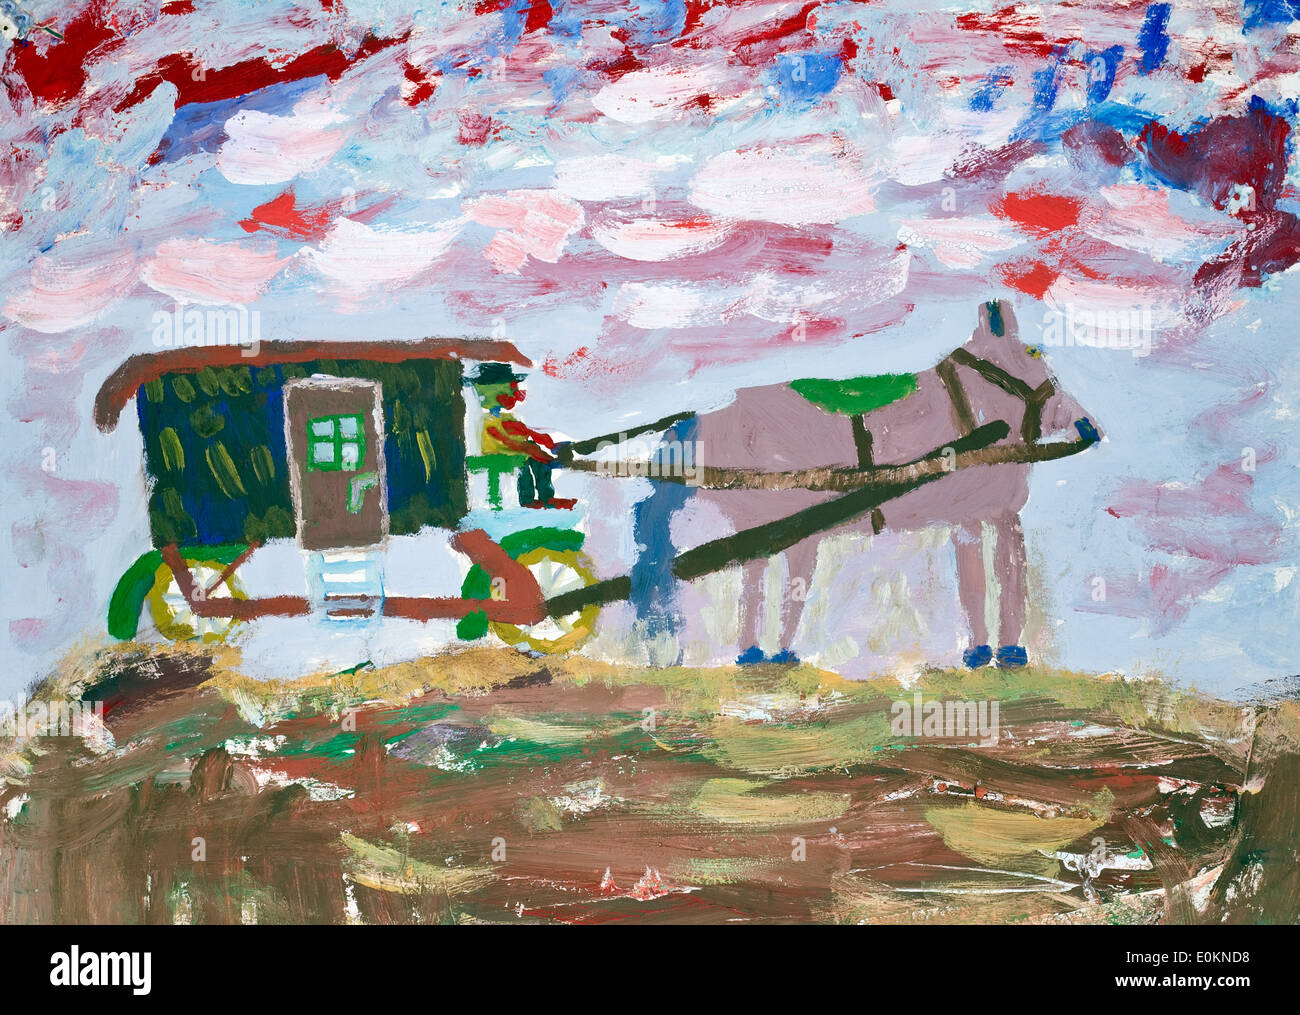 Circus came to us concept. Pink horse, green van and sad clown. Naive child oil art handmade illustration - Stock Image